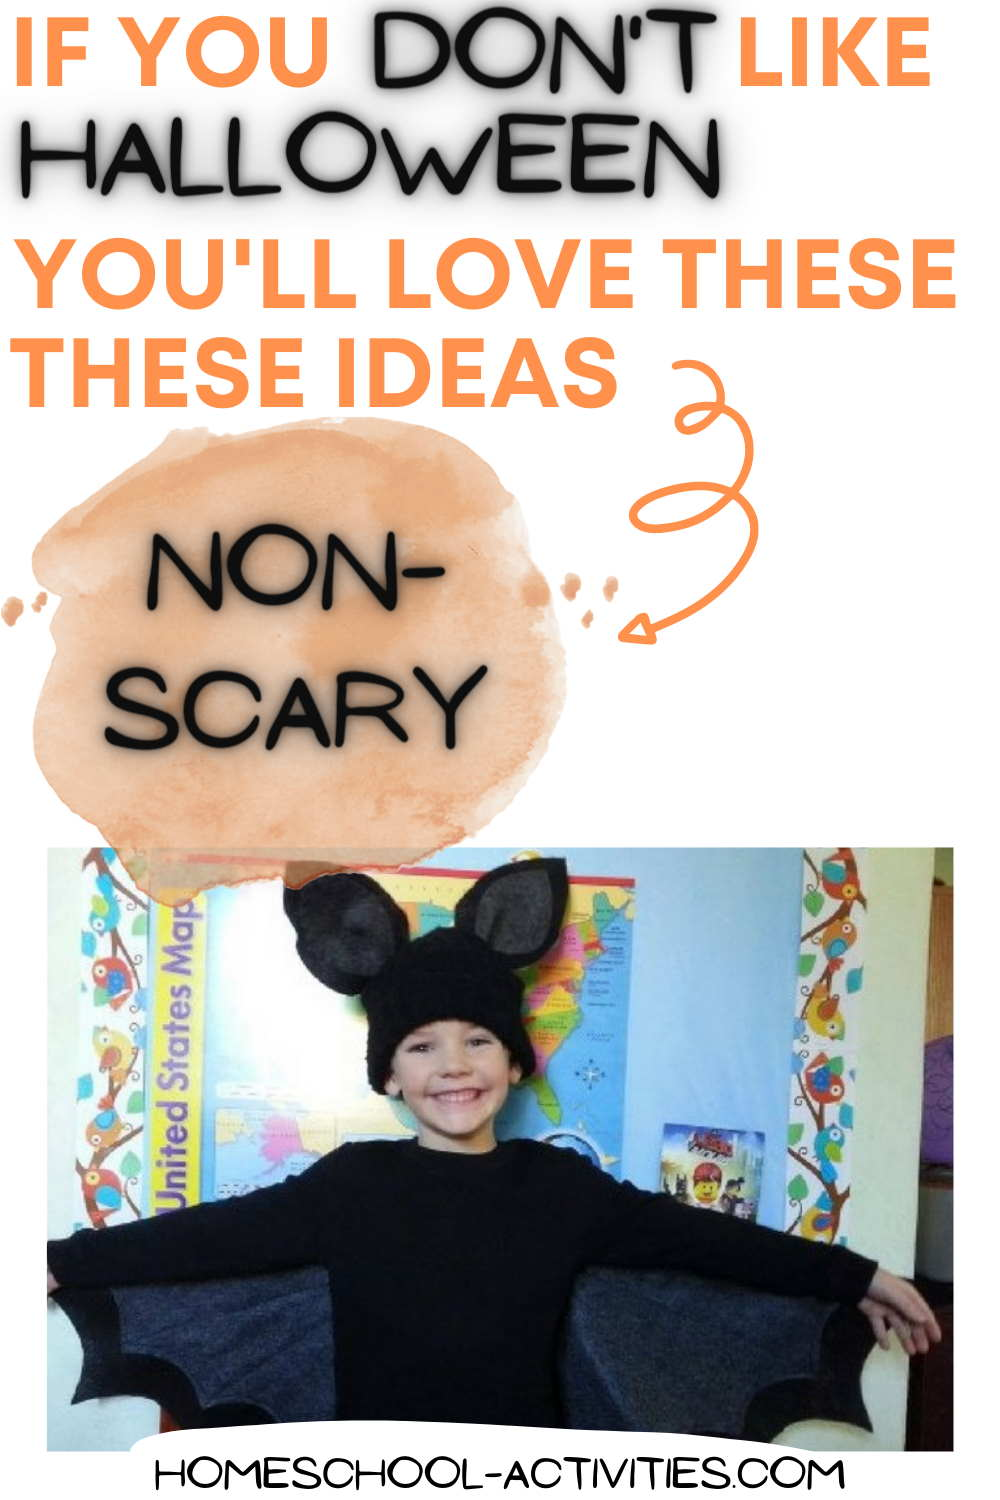 Halloween kids crafts activities